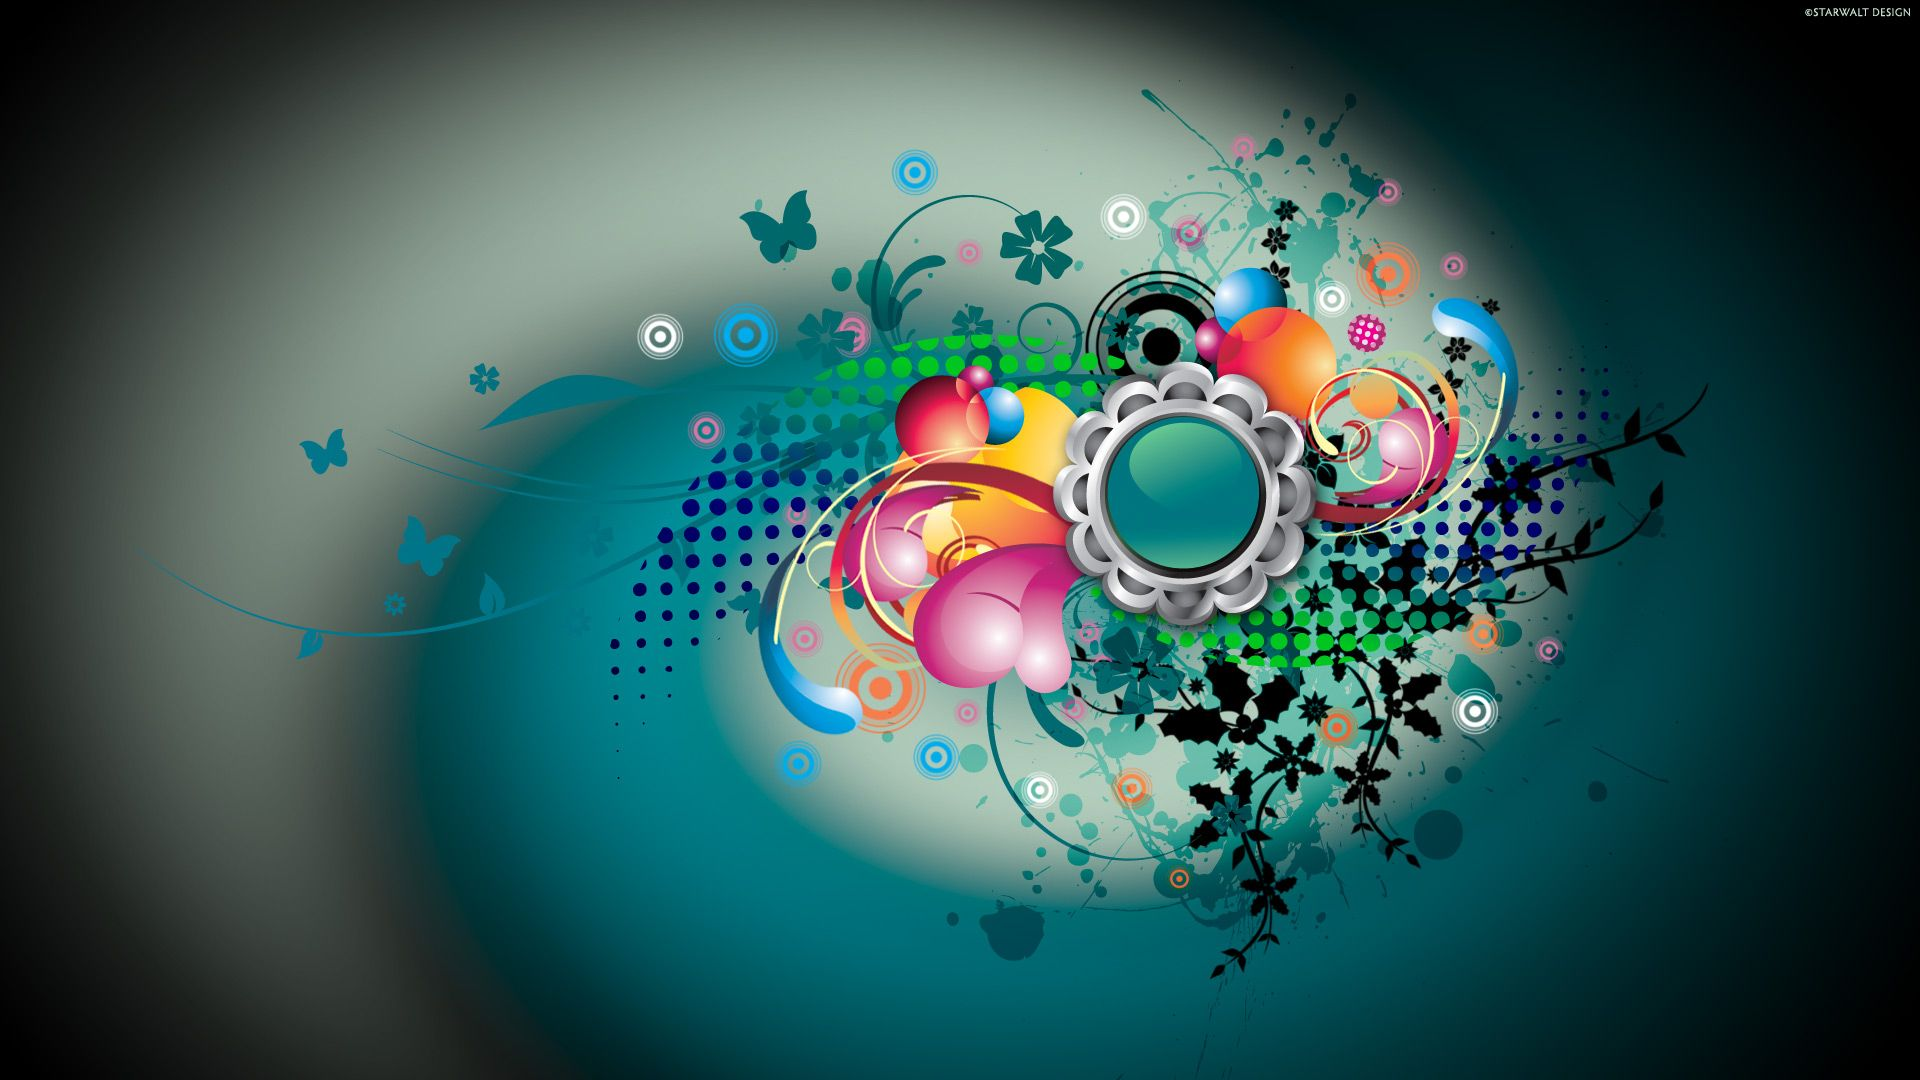 Hdtv Vector Designs Wallpapers Hd Wallpapers Desktop Wallpaper Design Graphic Wallpaper Vector Design